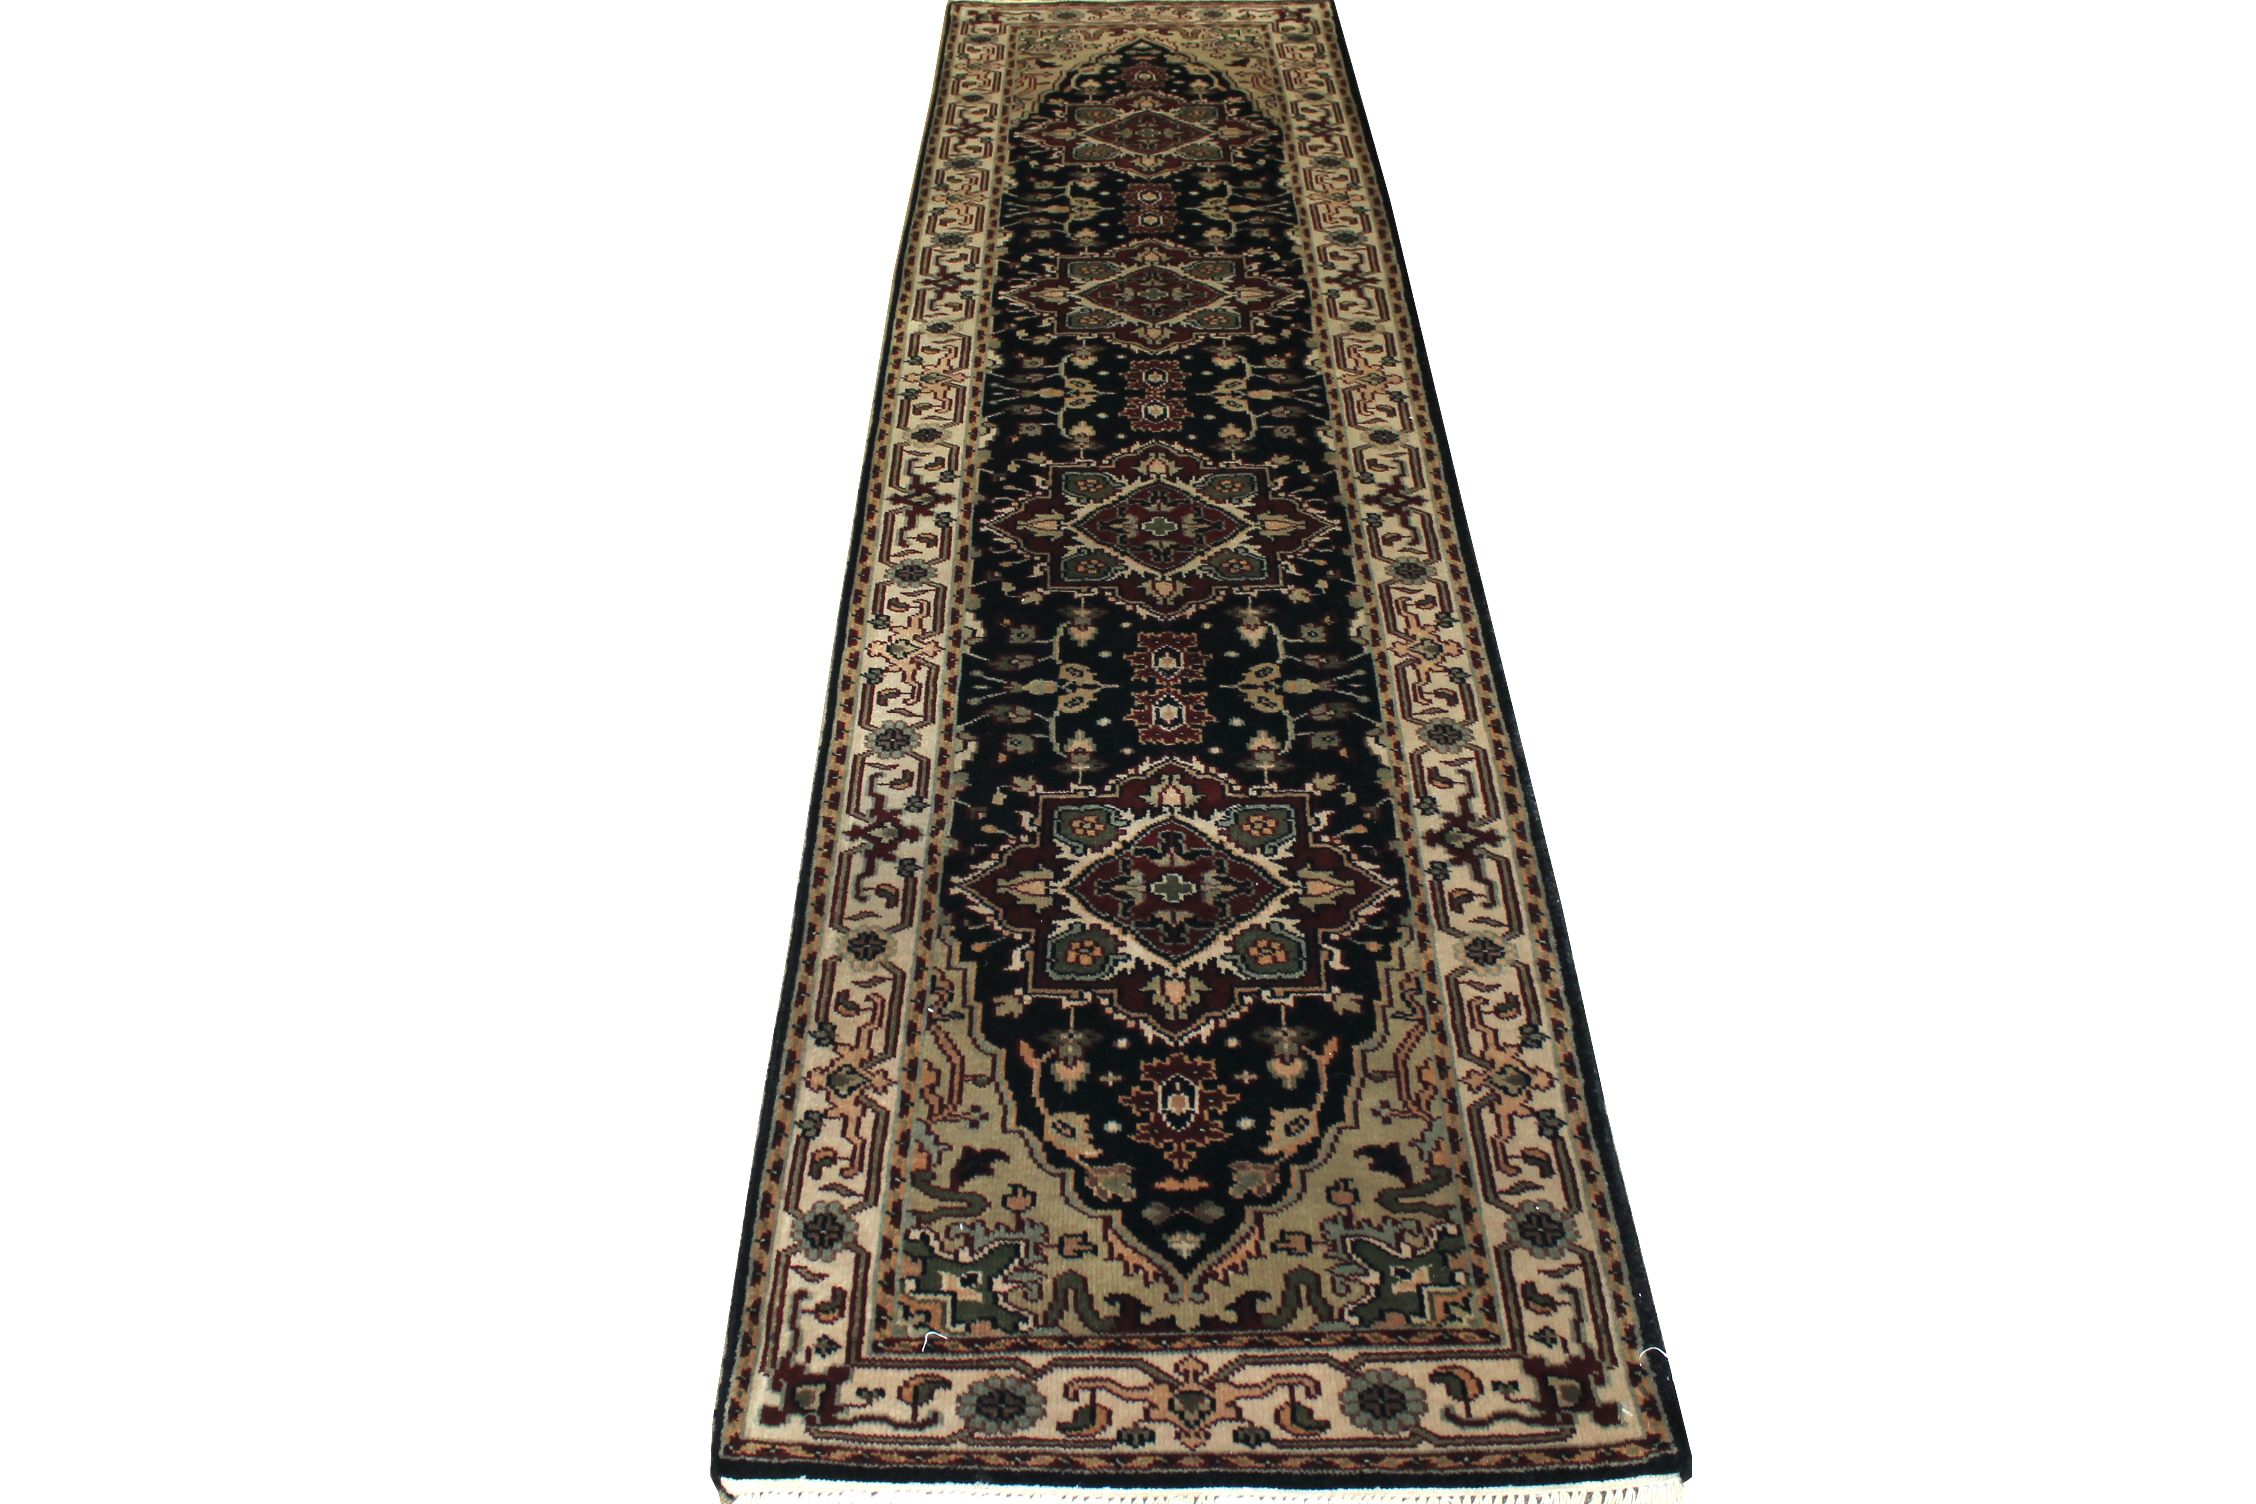 10 ft. Runner Traditional Hand Knotted Wool Area Rug - MR1110